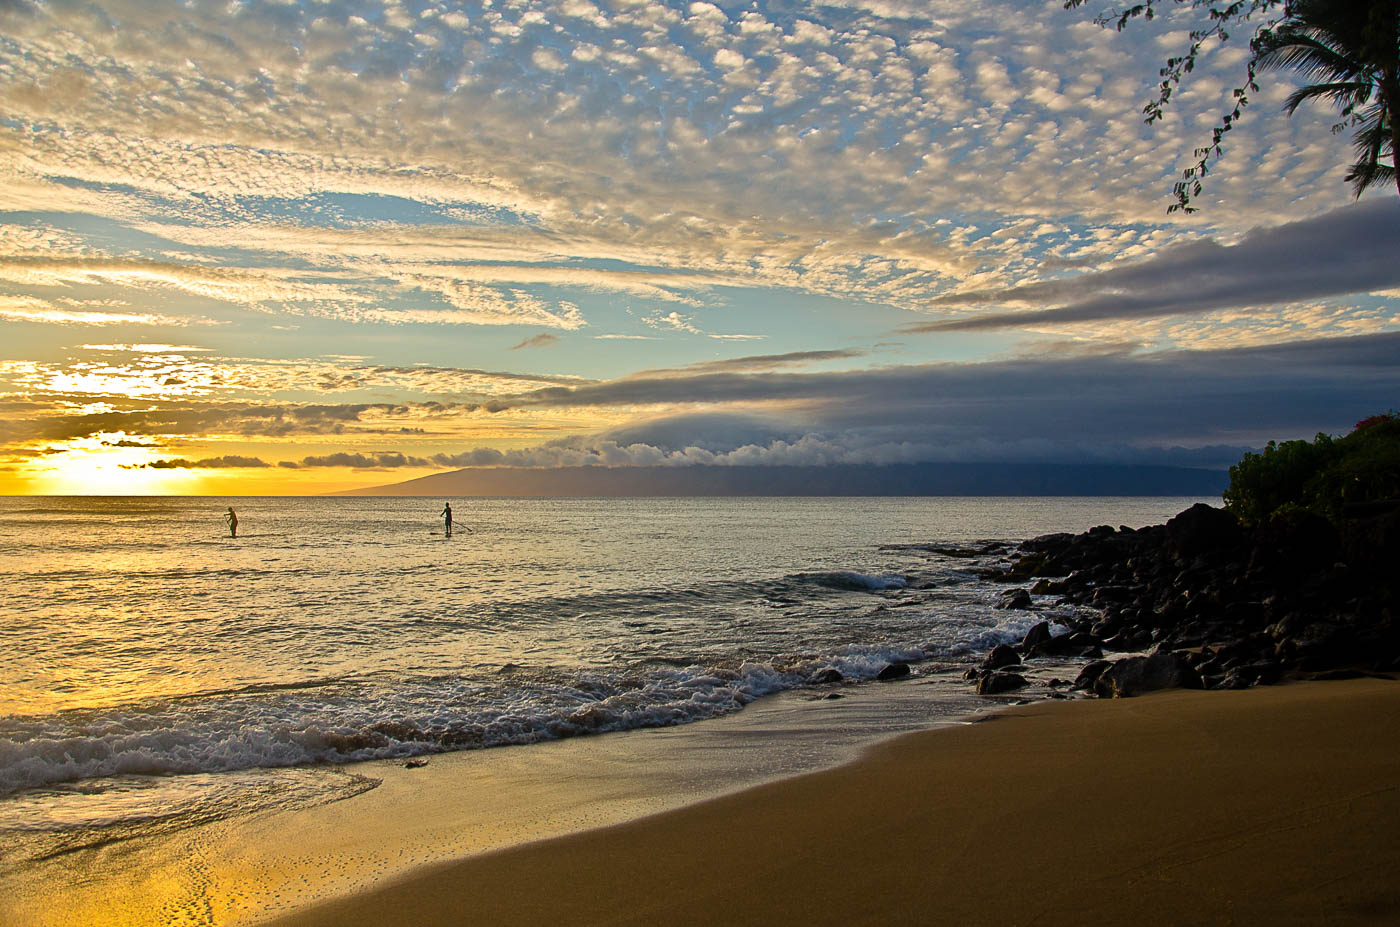 Sunset Paddleboards - Maui, Hawai'I | Pono Images